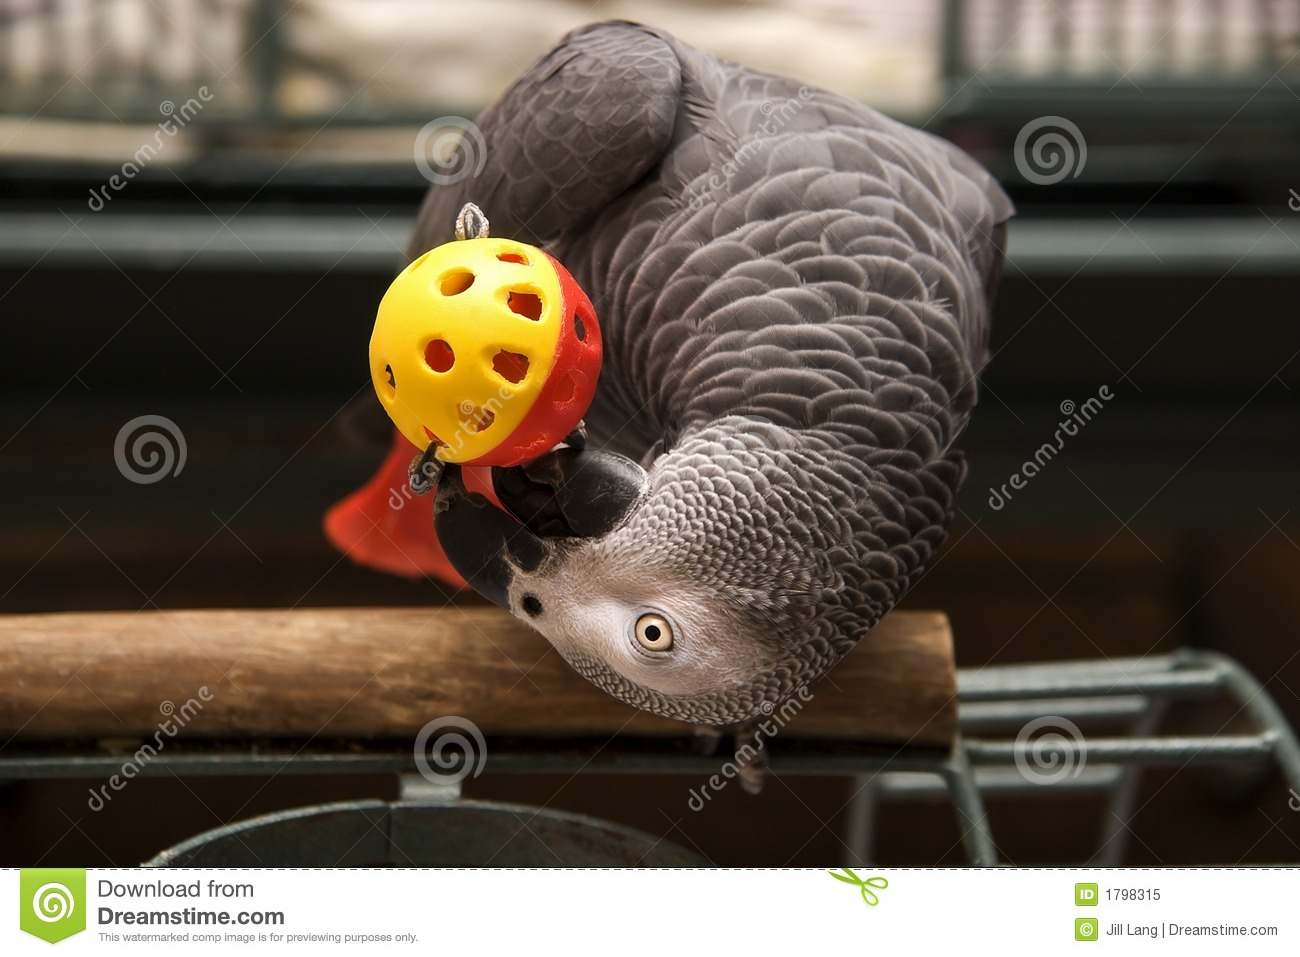 African grey playing royalty free stock photo image 1798315 for Silverleaf com